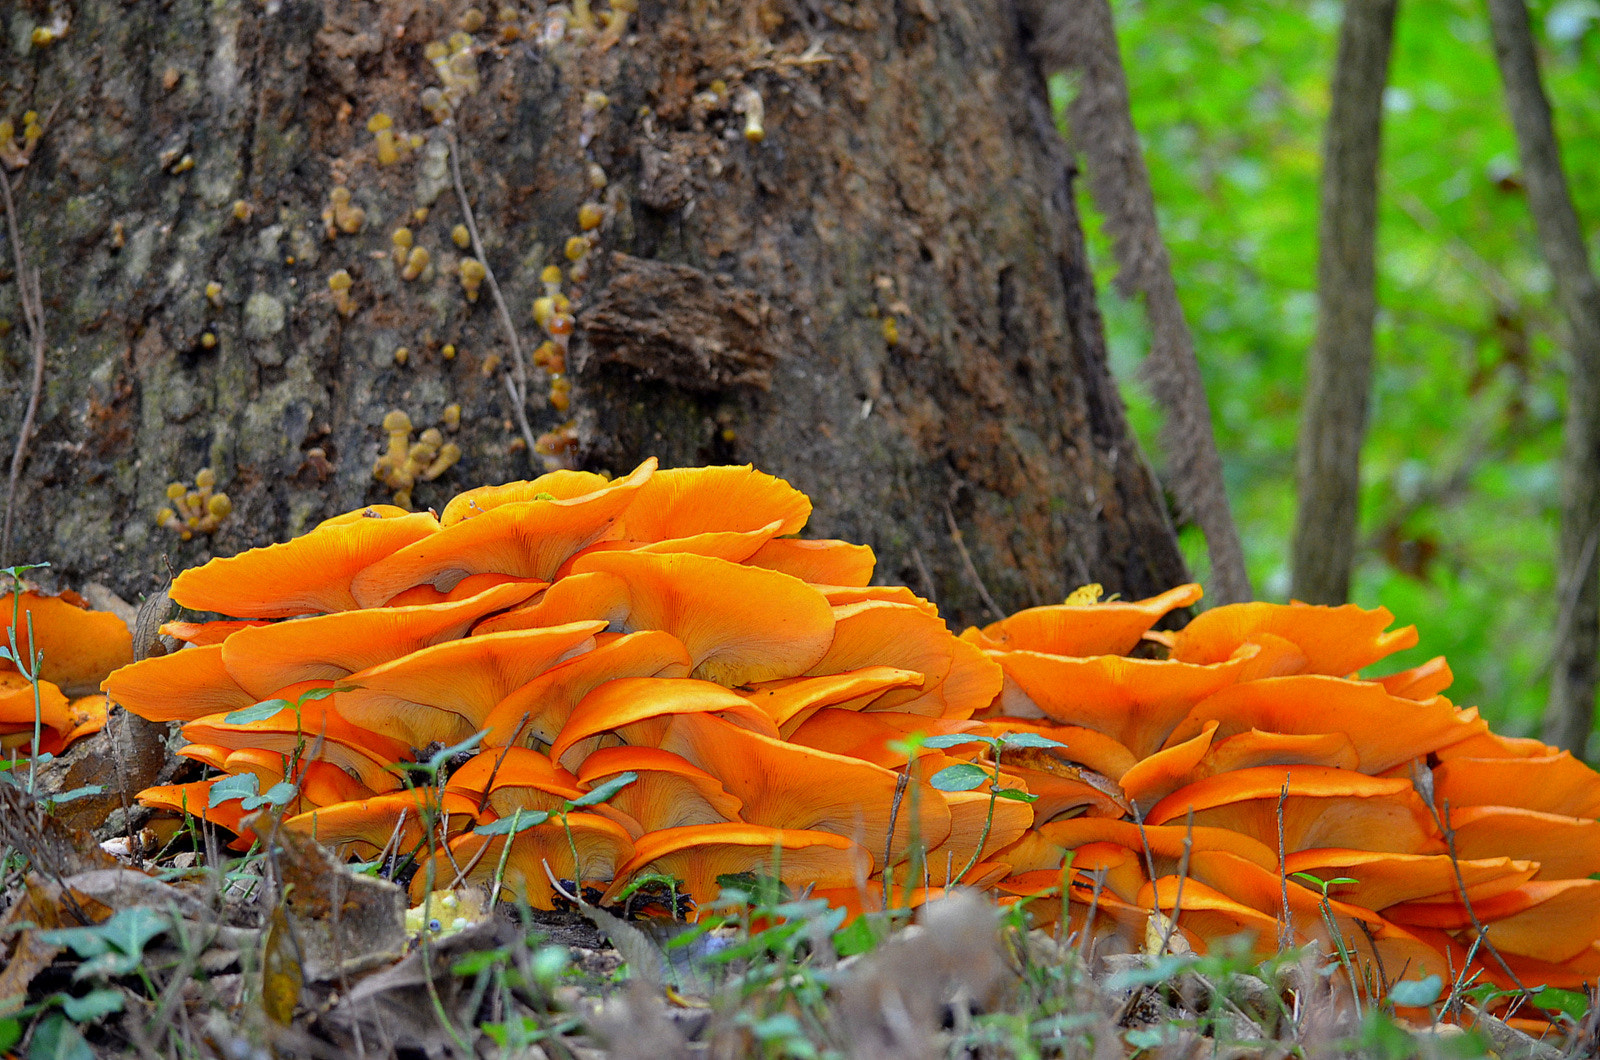 Photograph halloween shrooms? by Angie Peters Reszinski on 500px